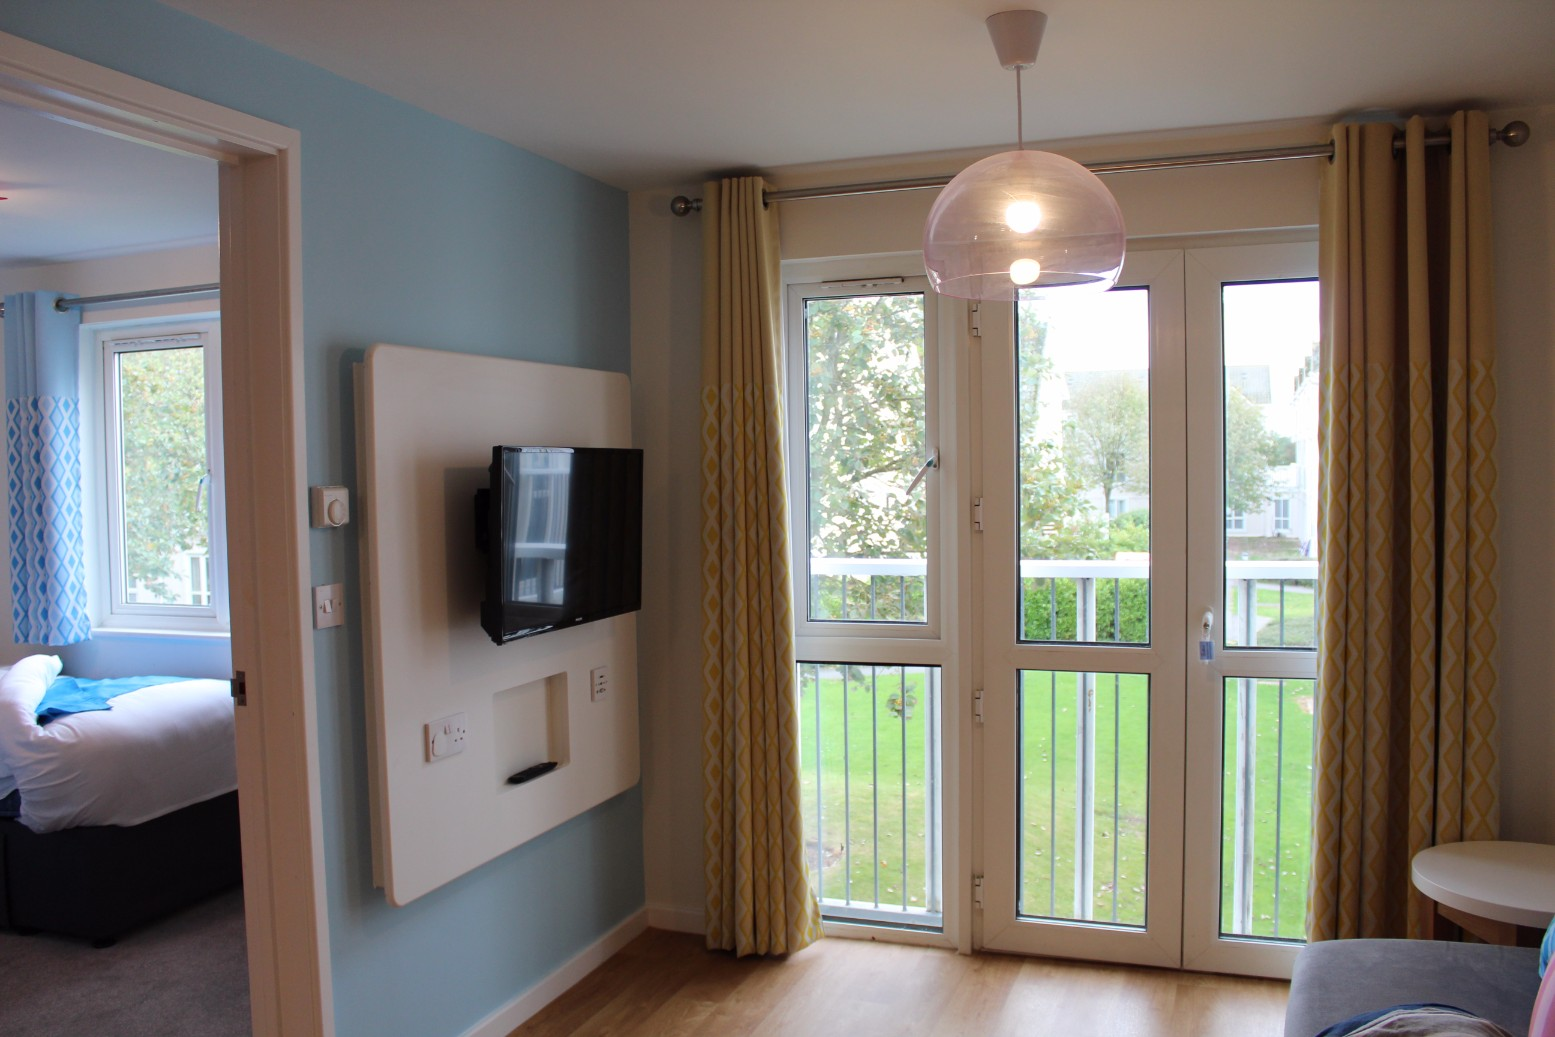 living room package with tv condo fireplace design ideas fairground apartments butlin's skegness - review ...